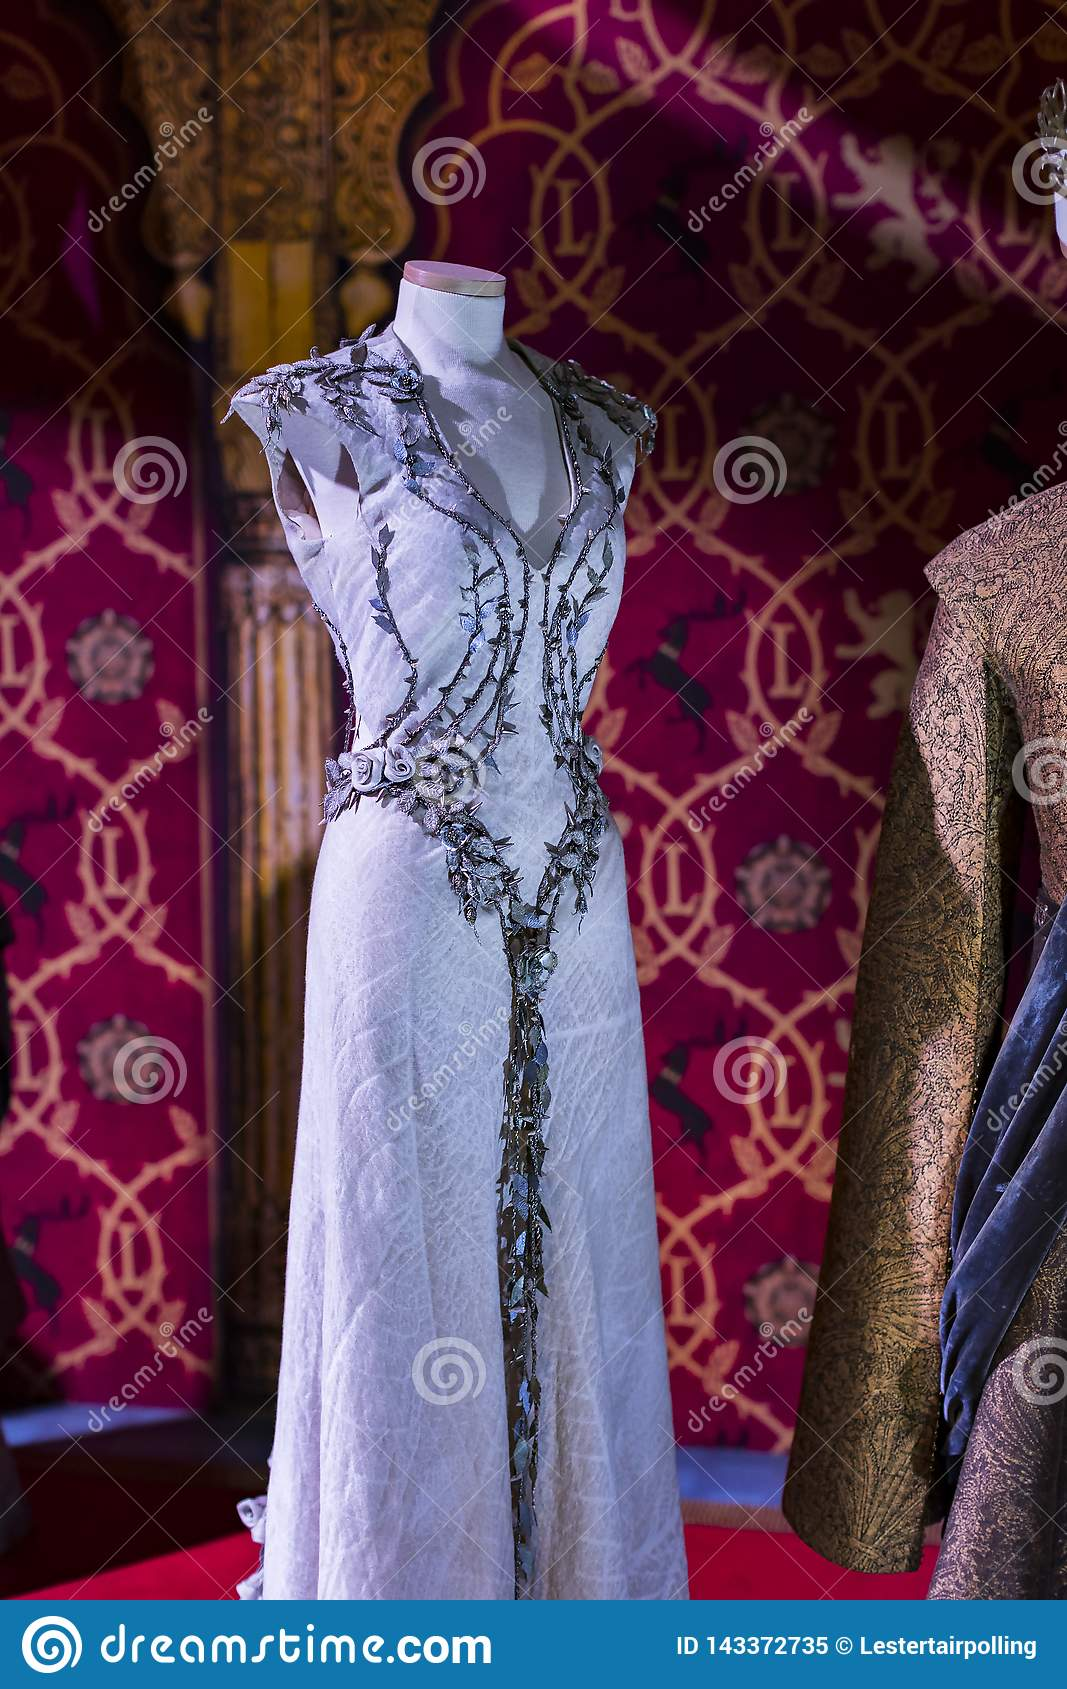 Trajes originais dos atores e dos suportes do ` The Game do filme do ` dos tronos nos locais do museu marítimo de Barcelona